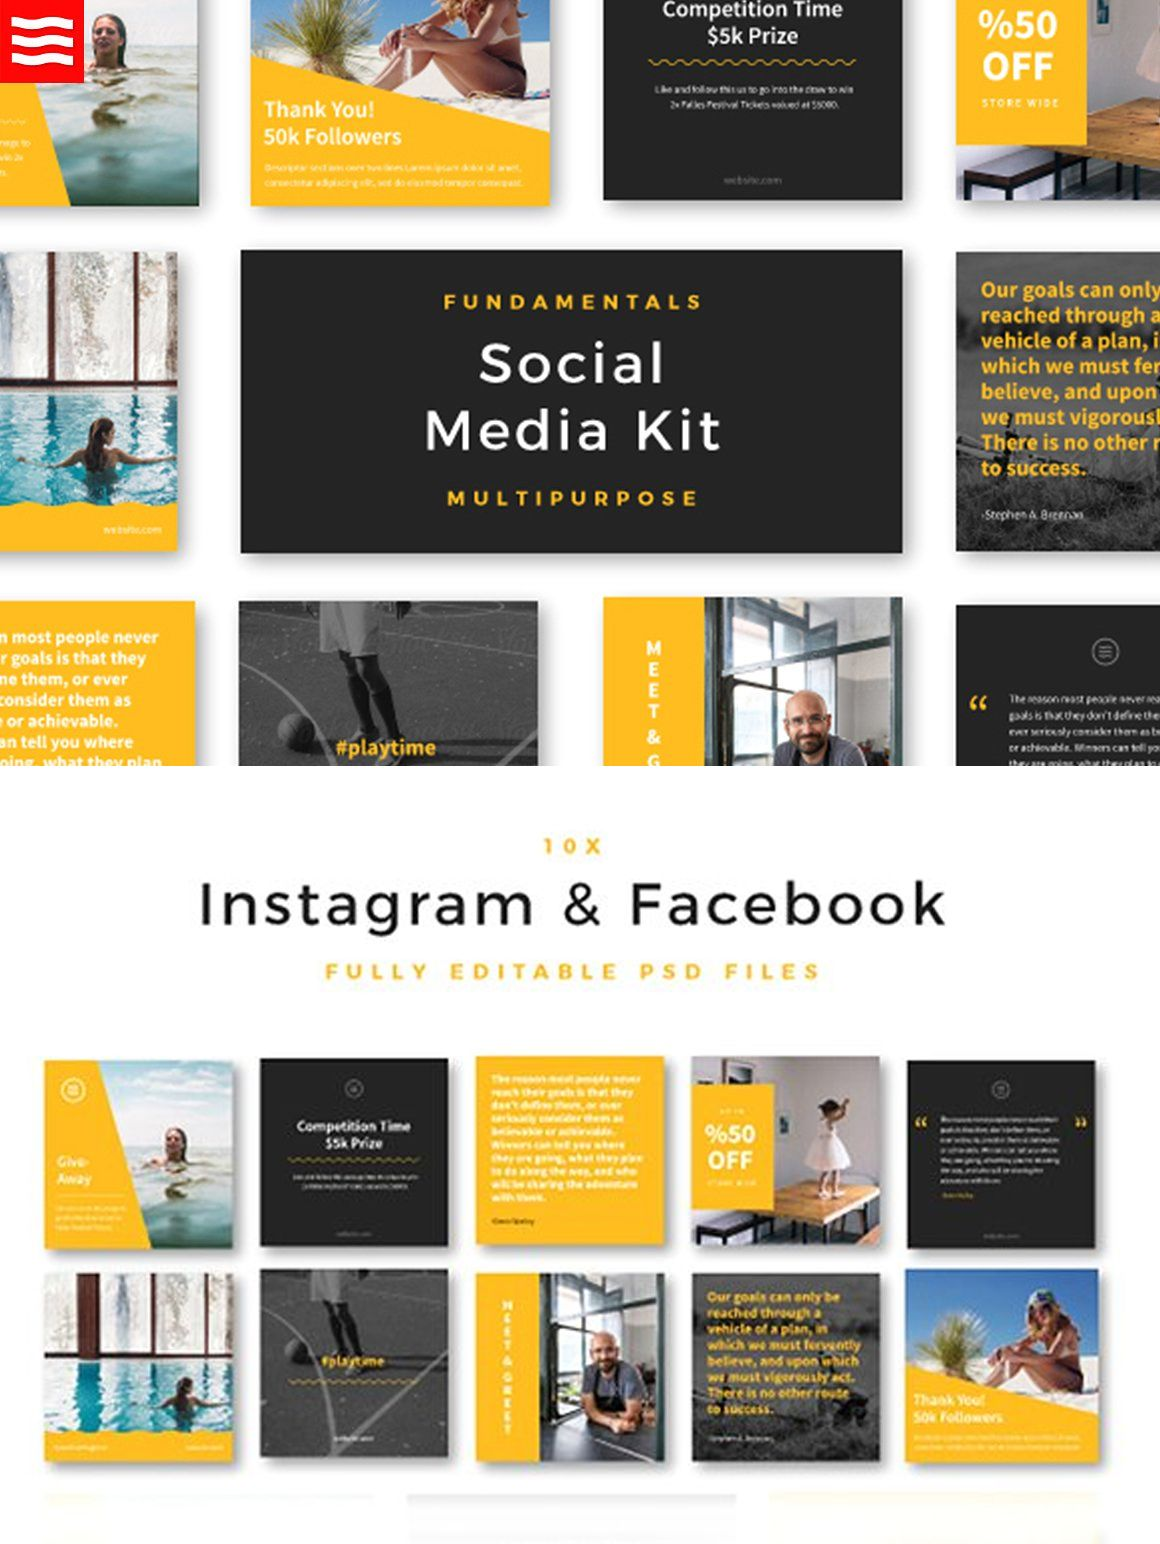 fundamentals social media kit templates psd social media templates